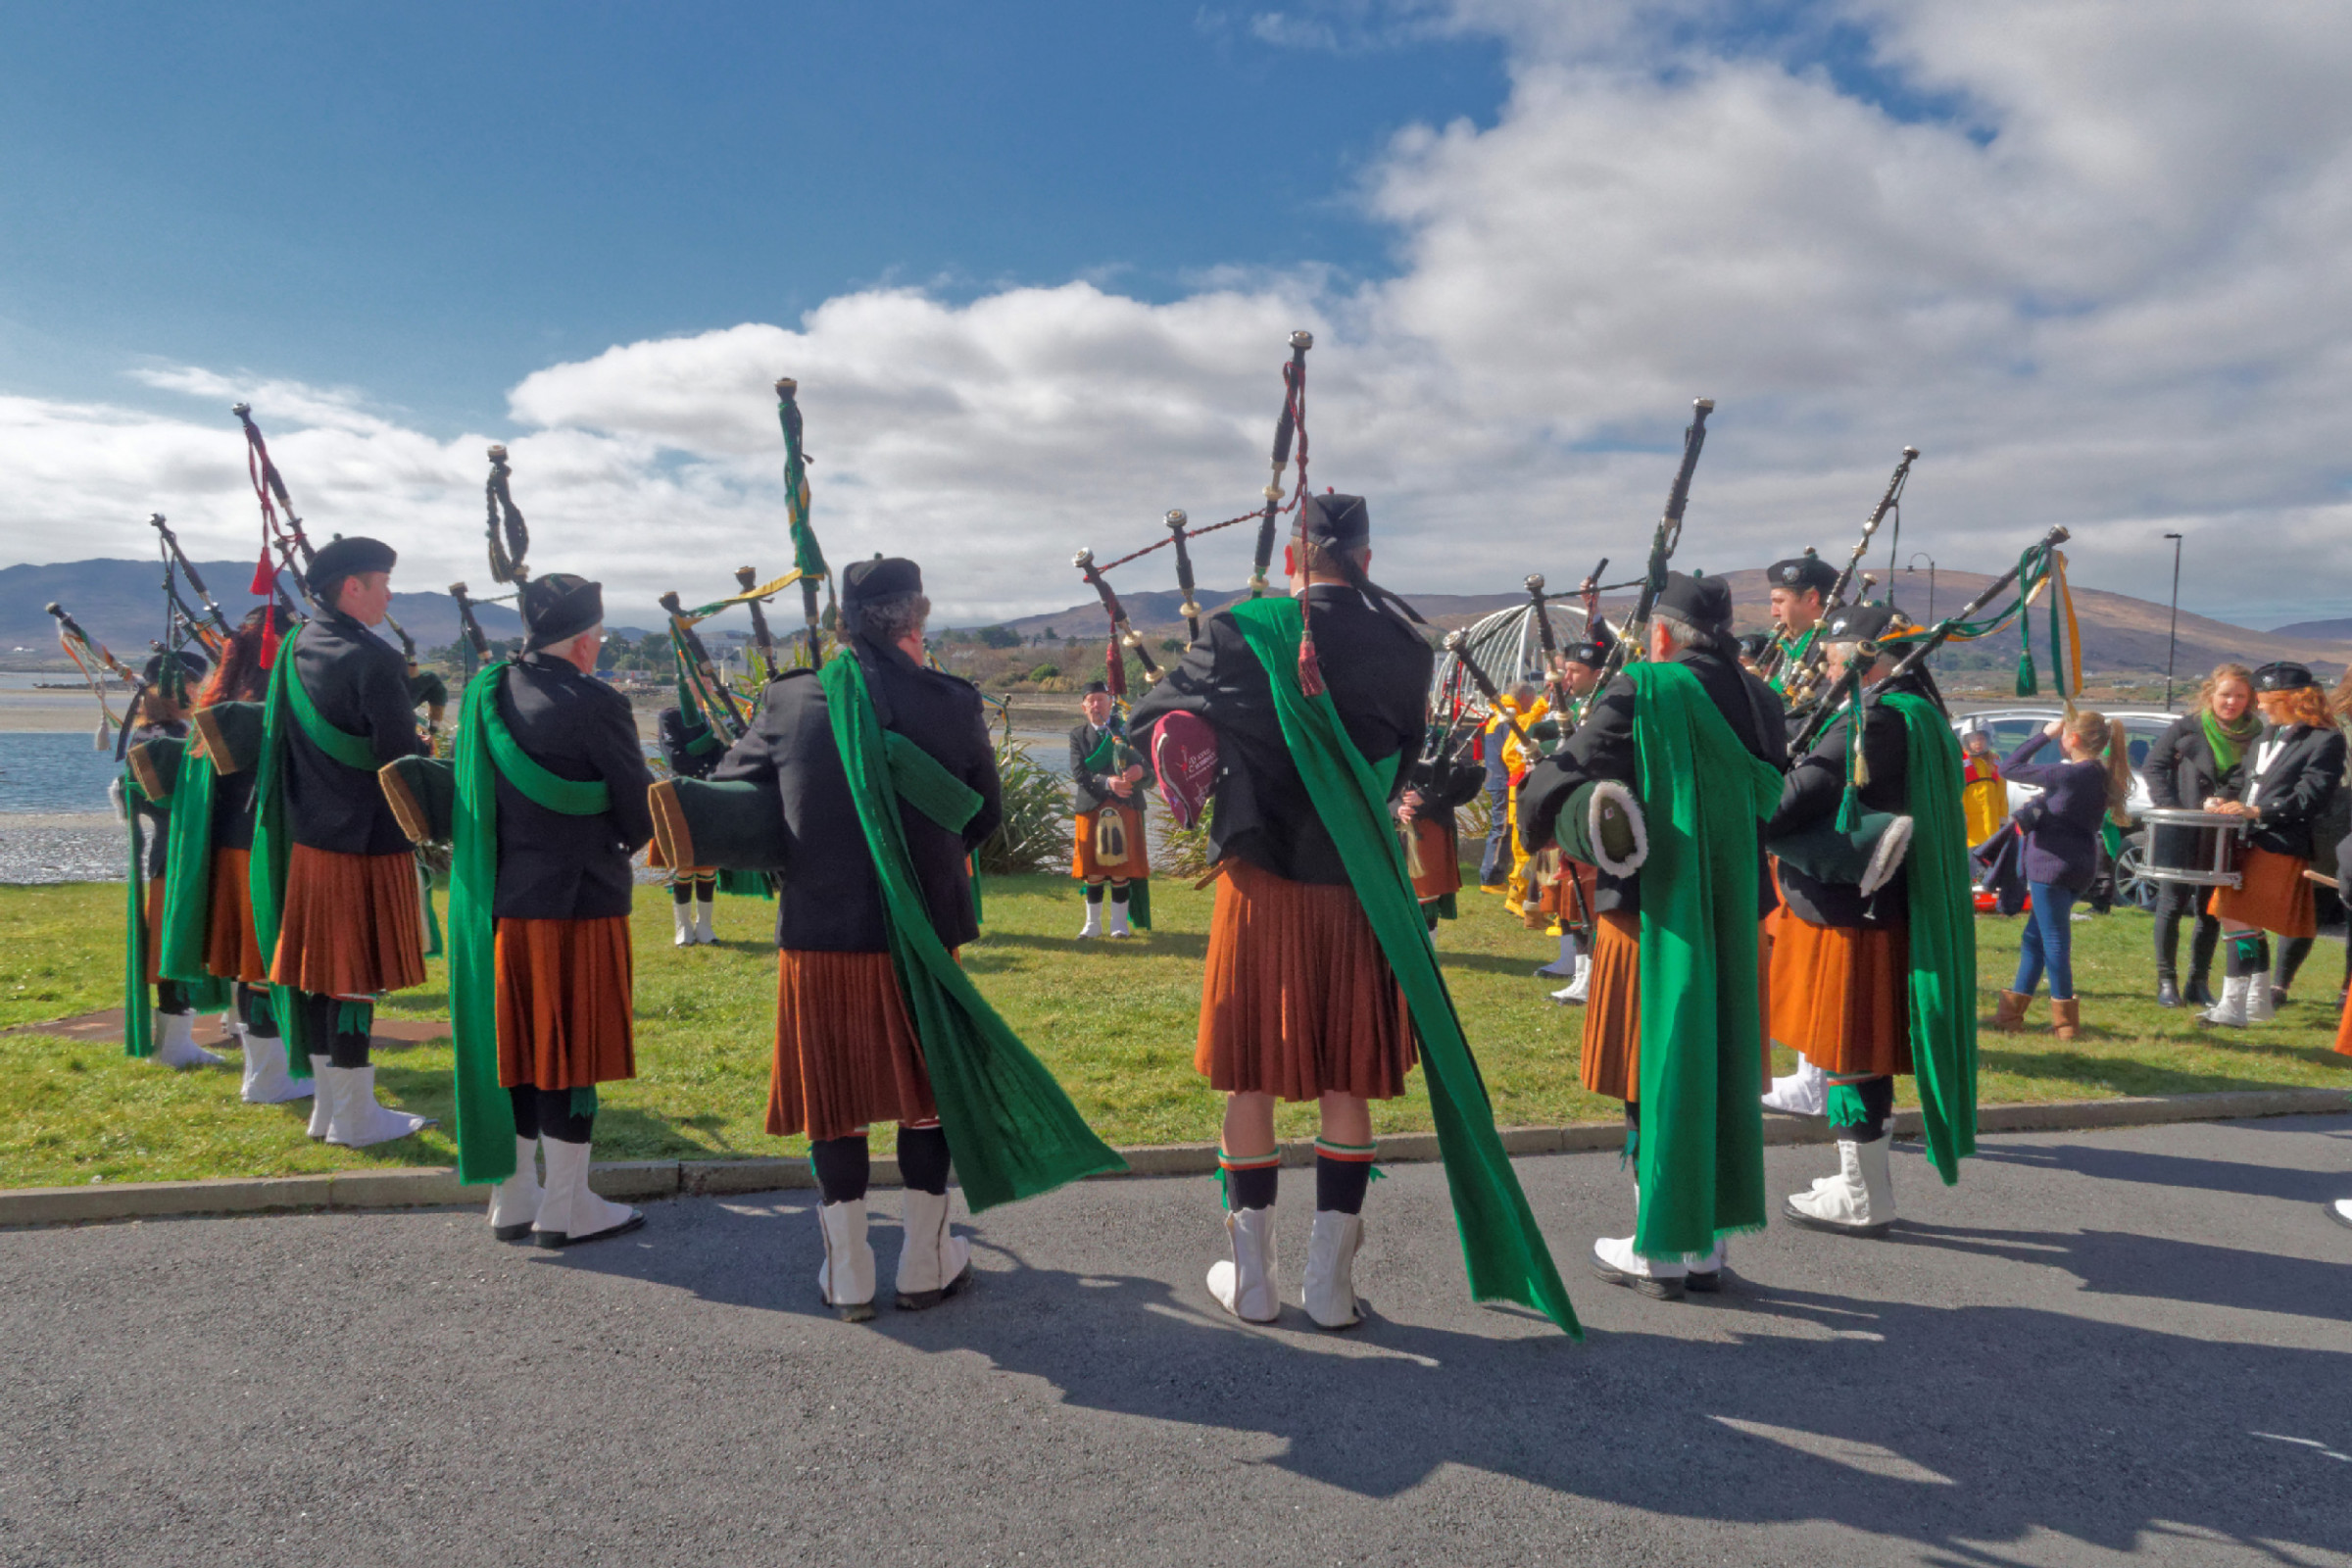 20160320124106-ie-achill-sound_parade-_DxO_13in_DxO96